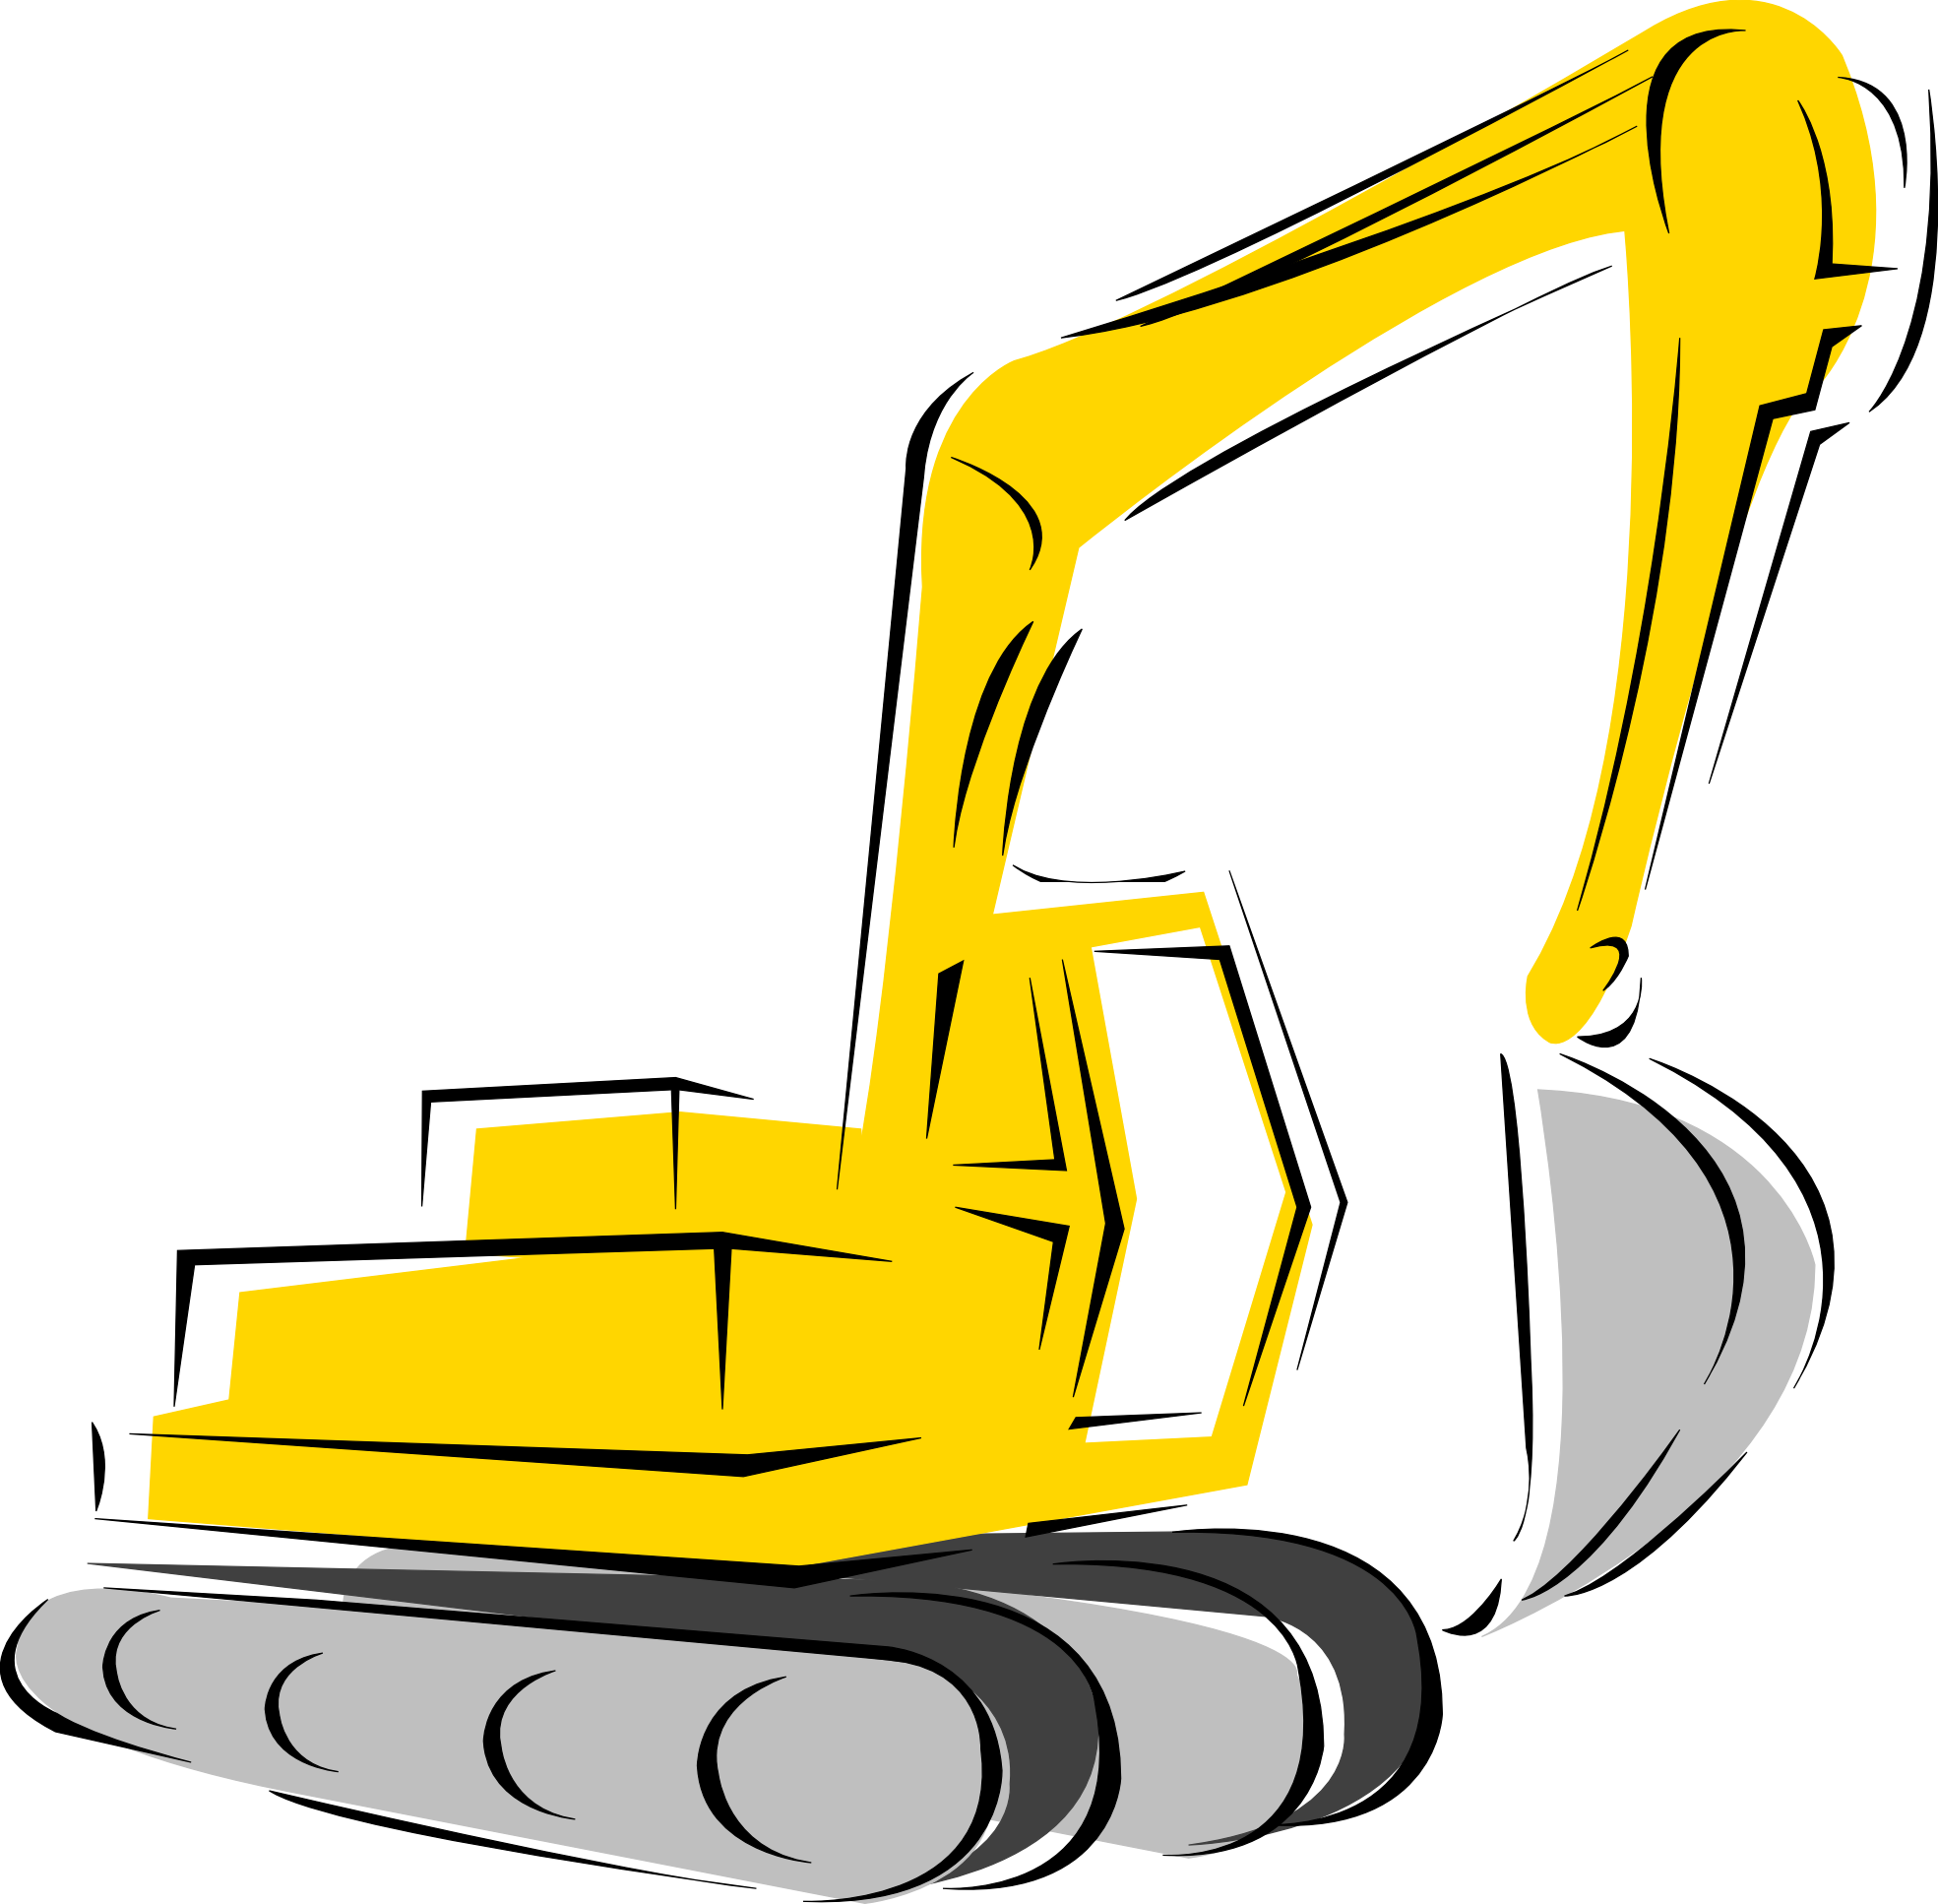 Bulldozer svg simple. Backhoe silhouette at getdrawings